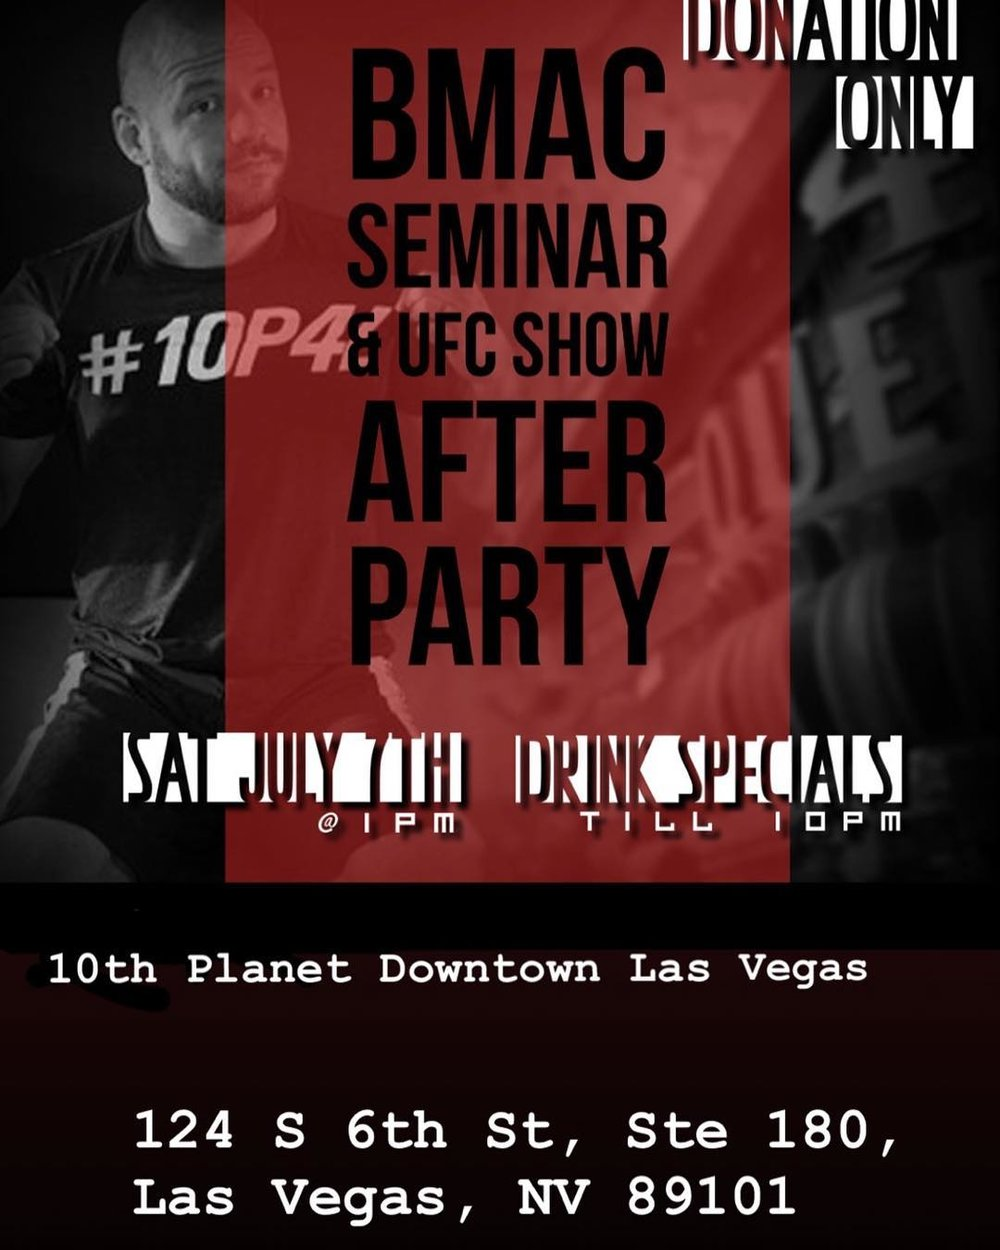 Brandon Mccaghren Seminar and UFC Show After Party